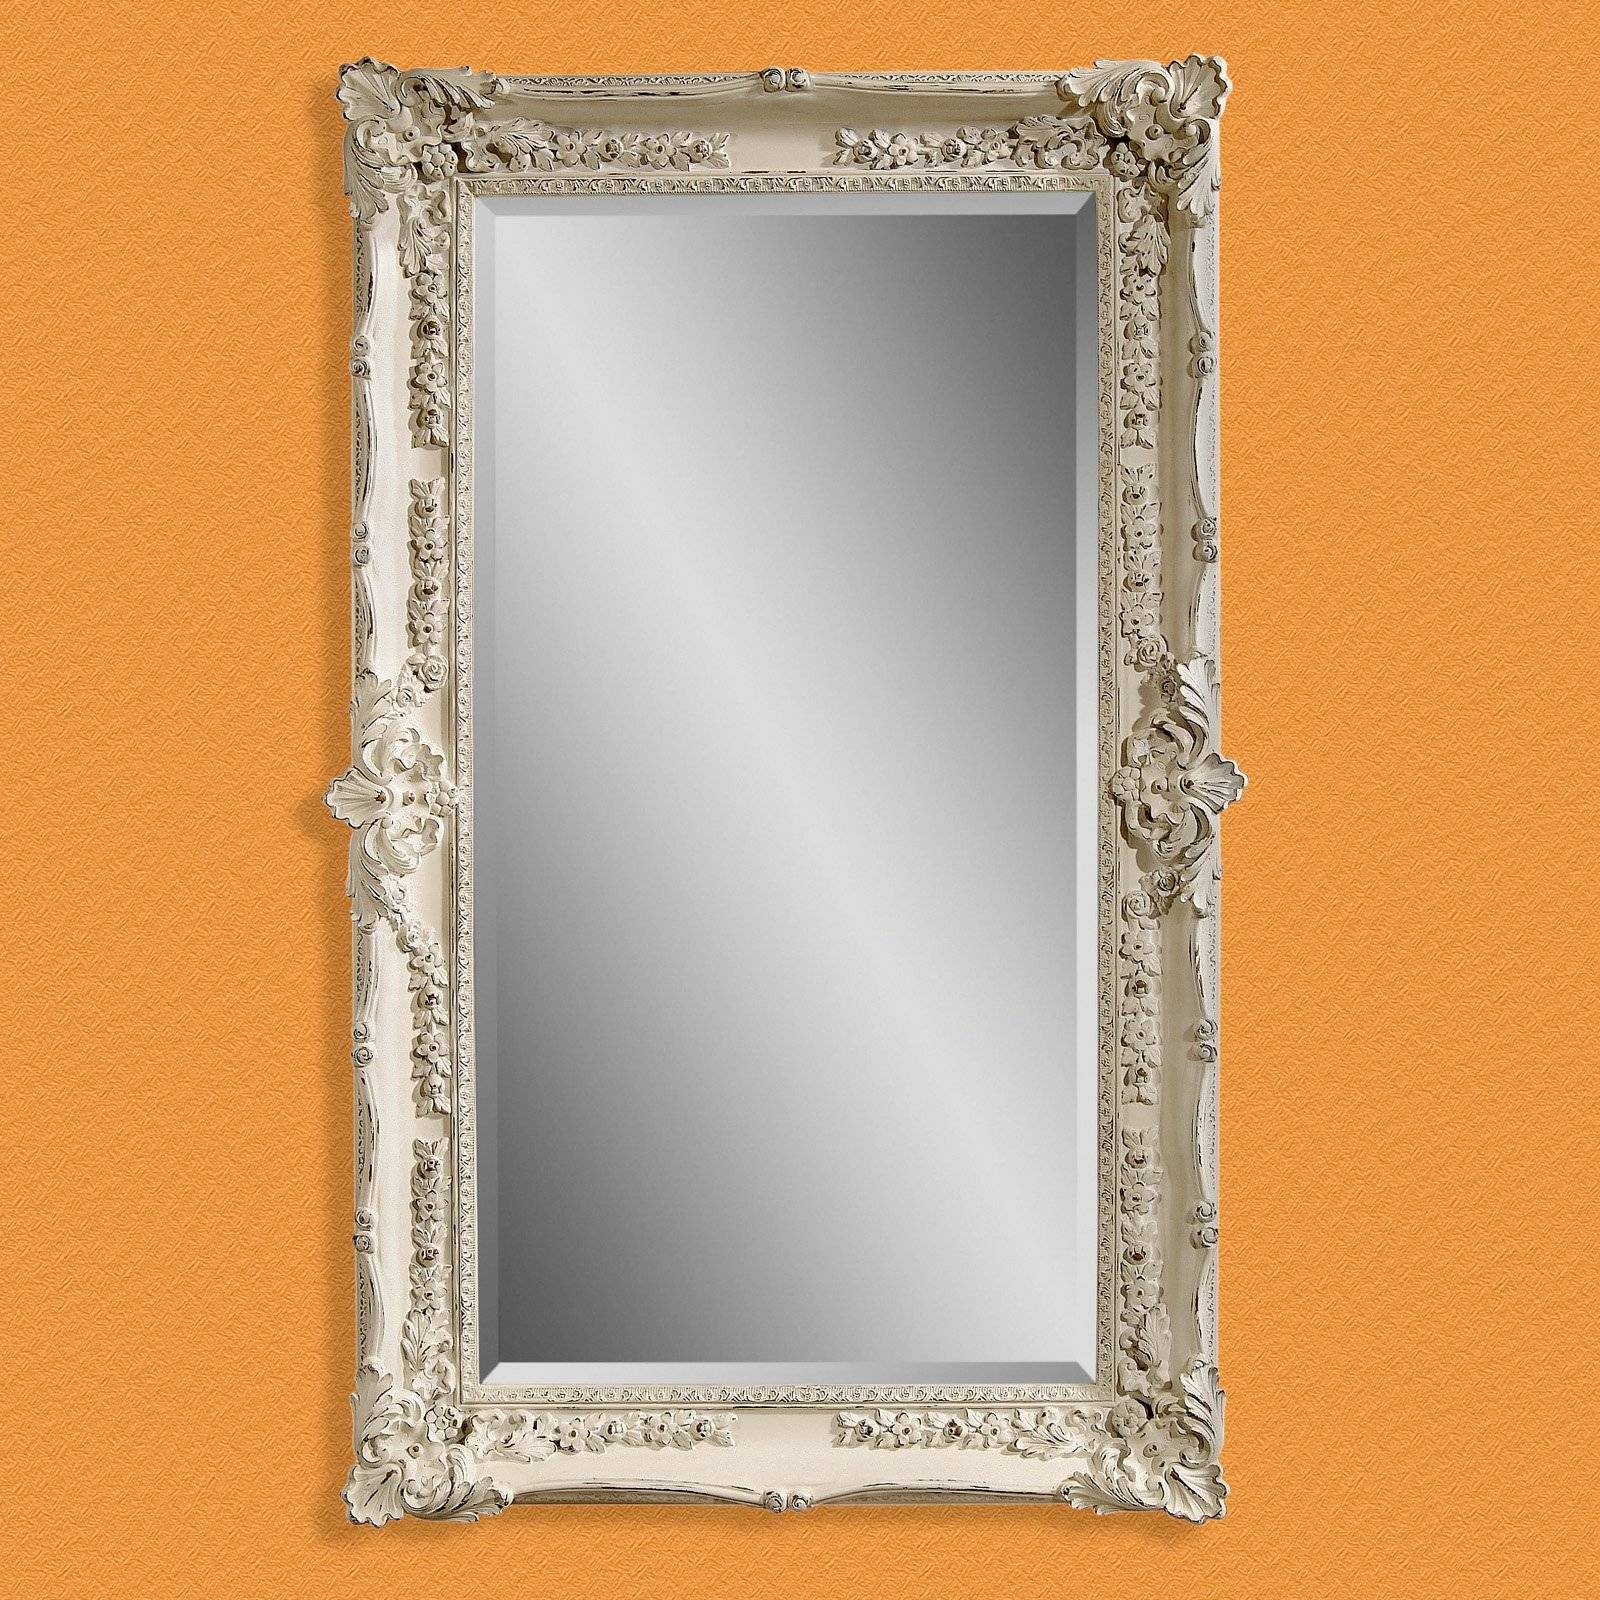 Antique White Wall / Leaning Floor Mirror - 43W X 69H In. | Hayneedle regarding White Antique Mirrors (Image 7 of 25)